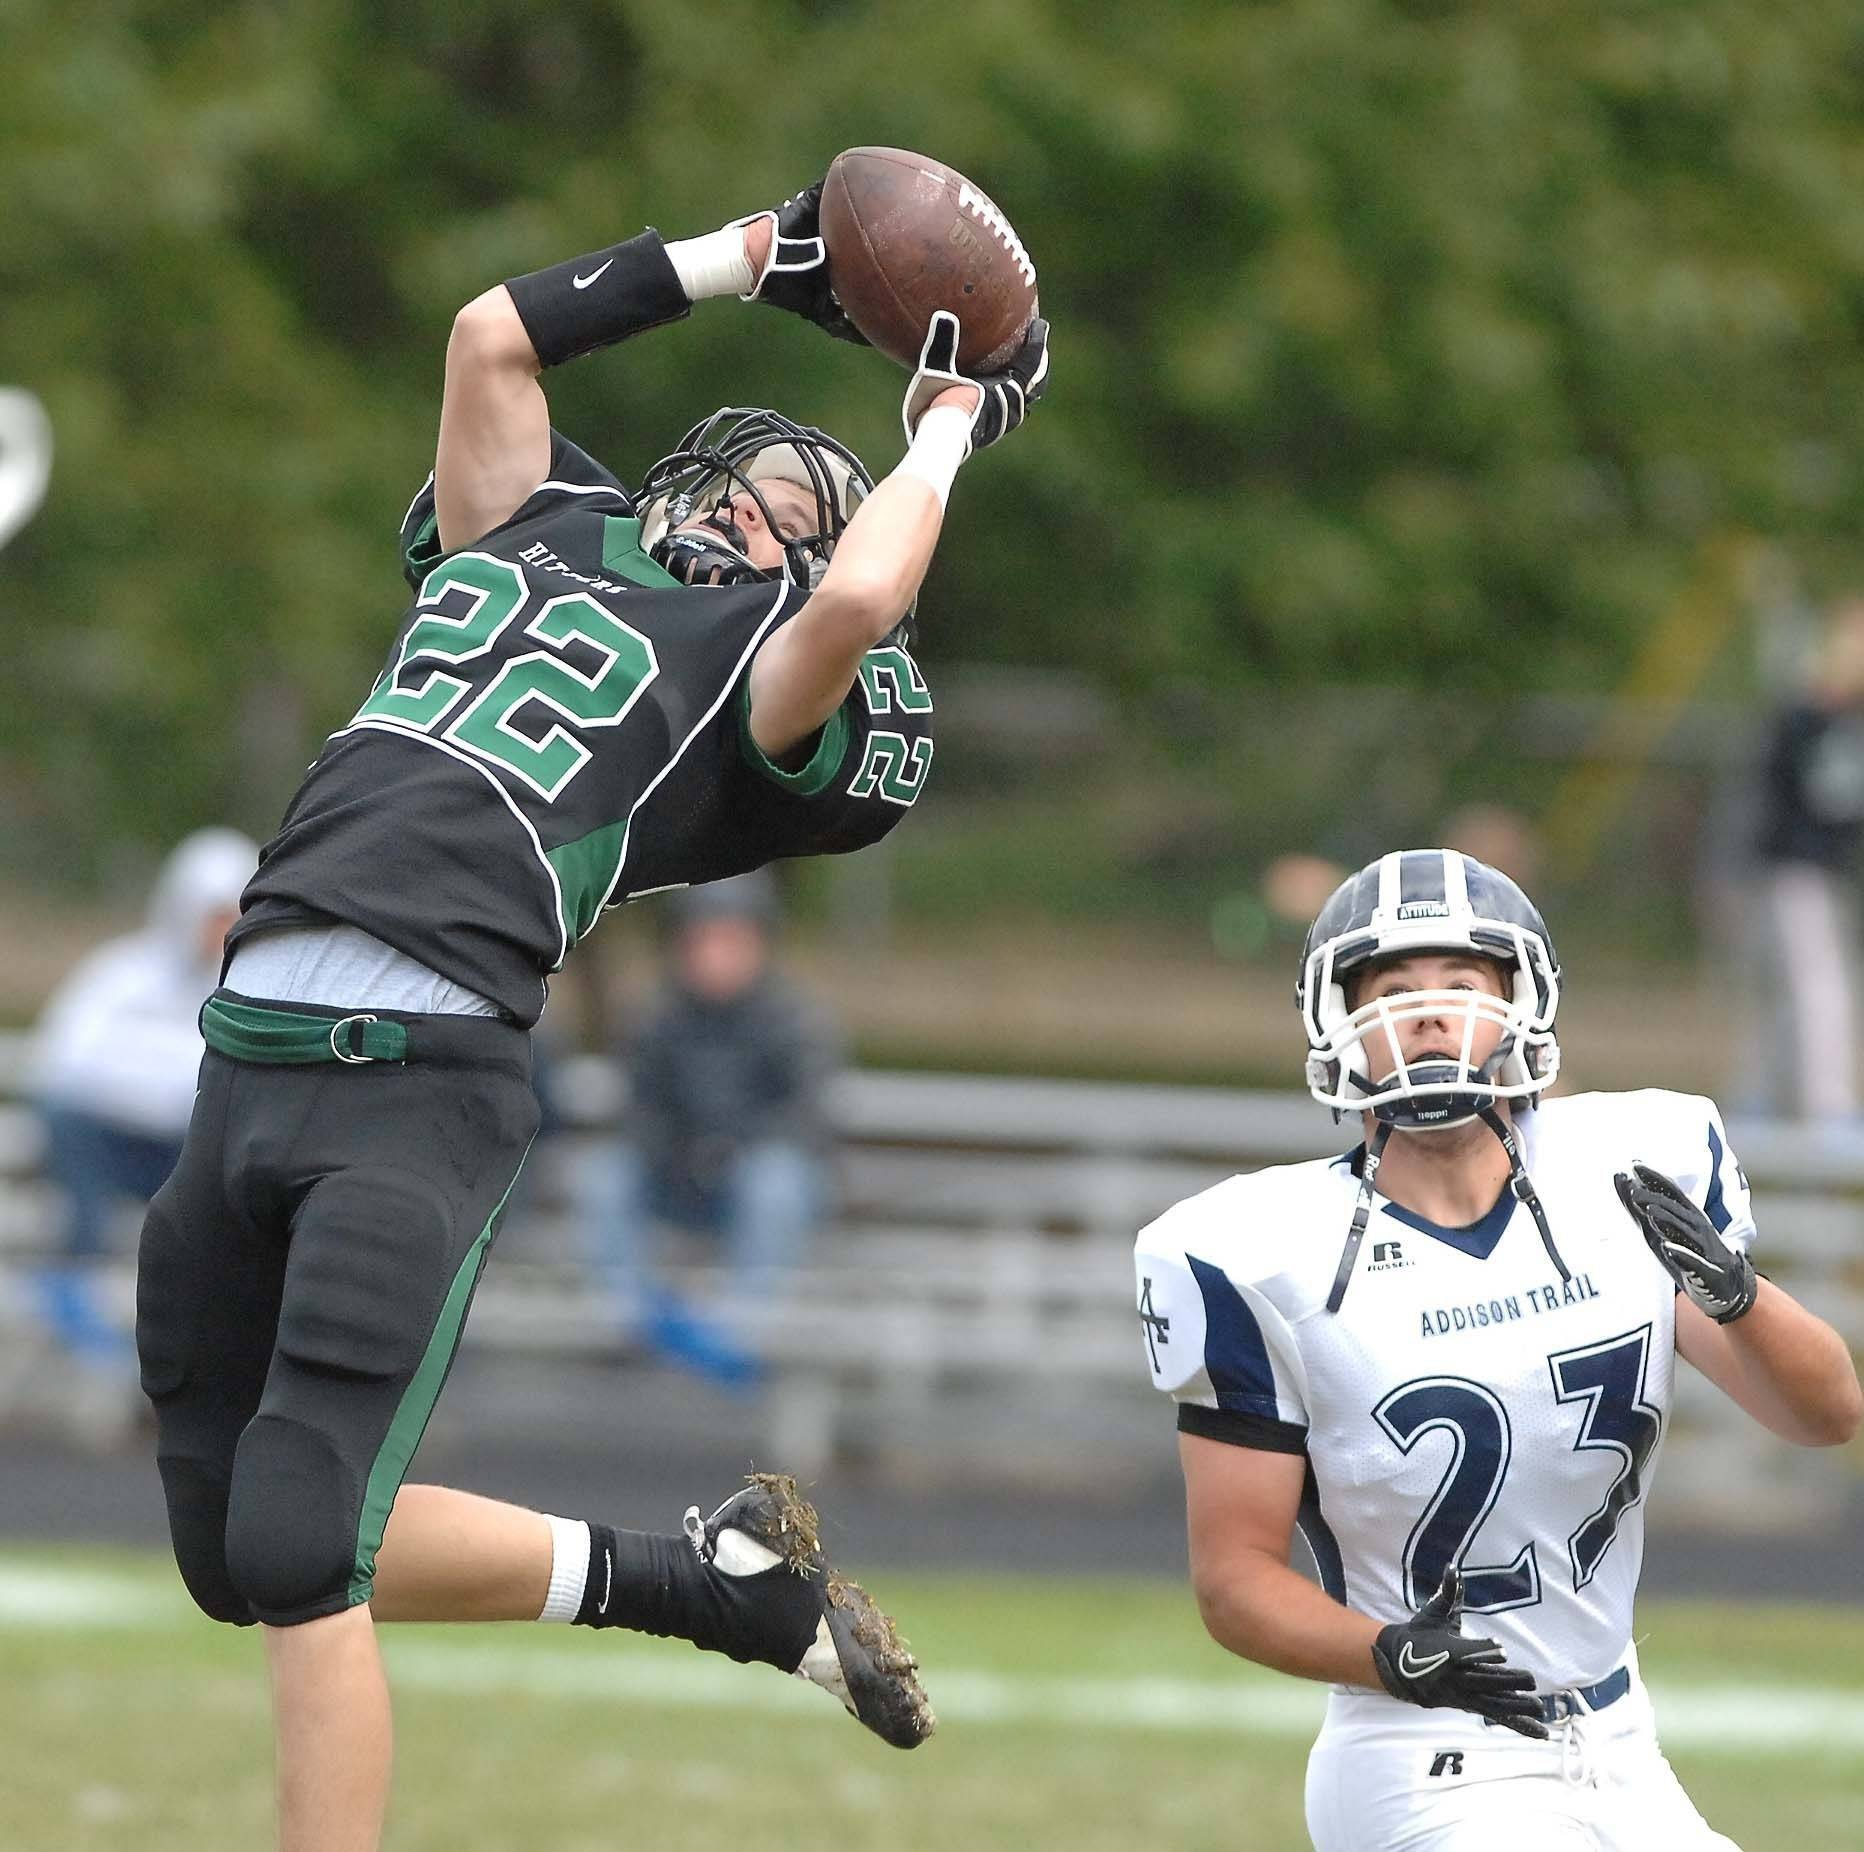 Matt Marston of Glenbard West picks off a pass intended for Nick Wisniewski during the Addison Trail at Glenbard West game Saturday.